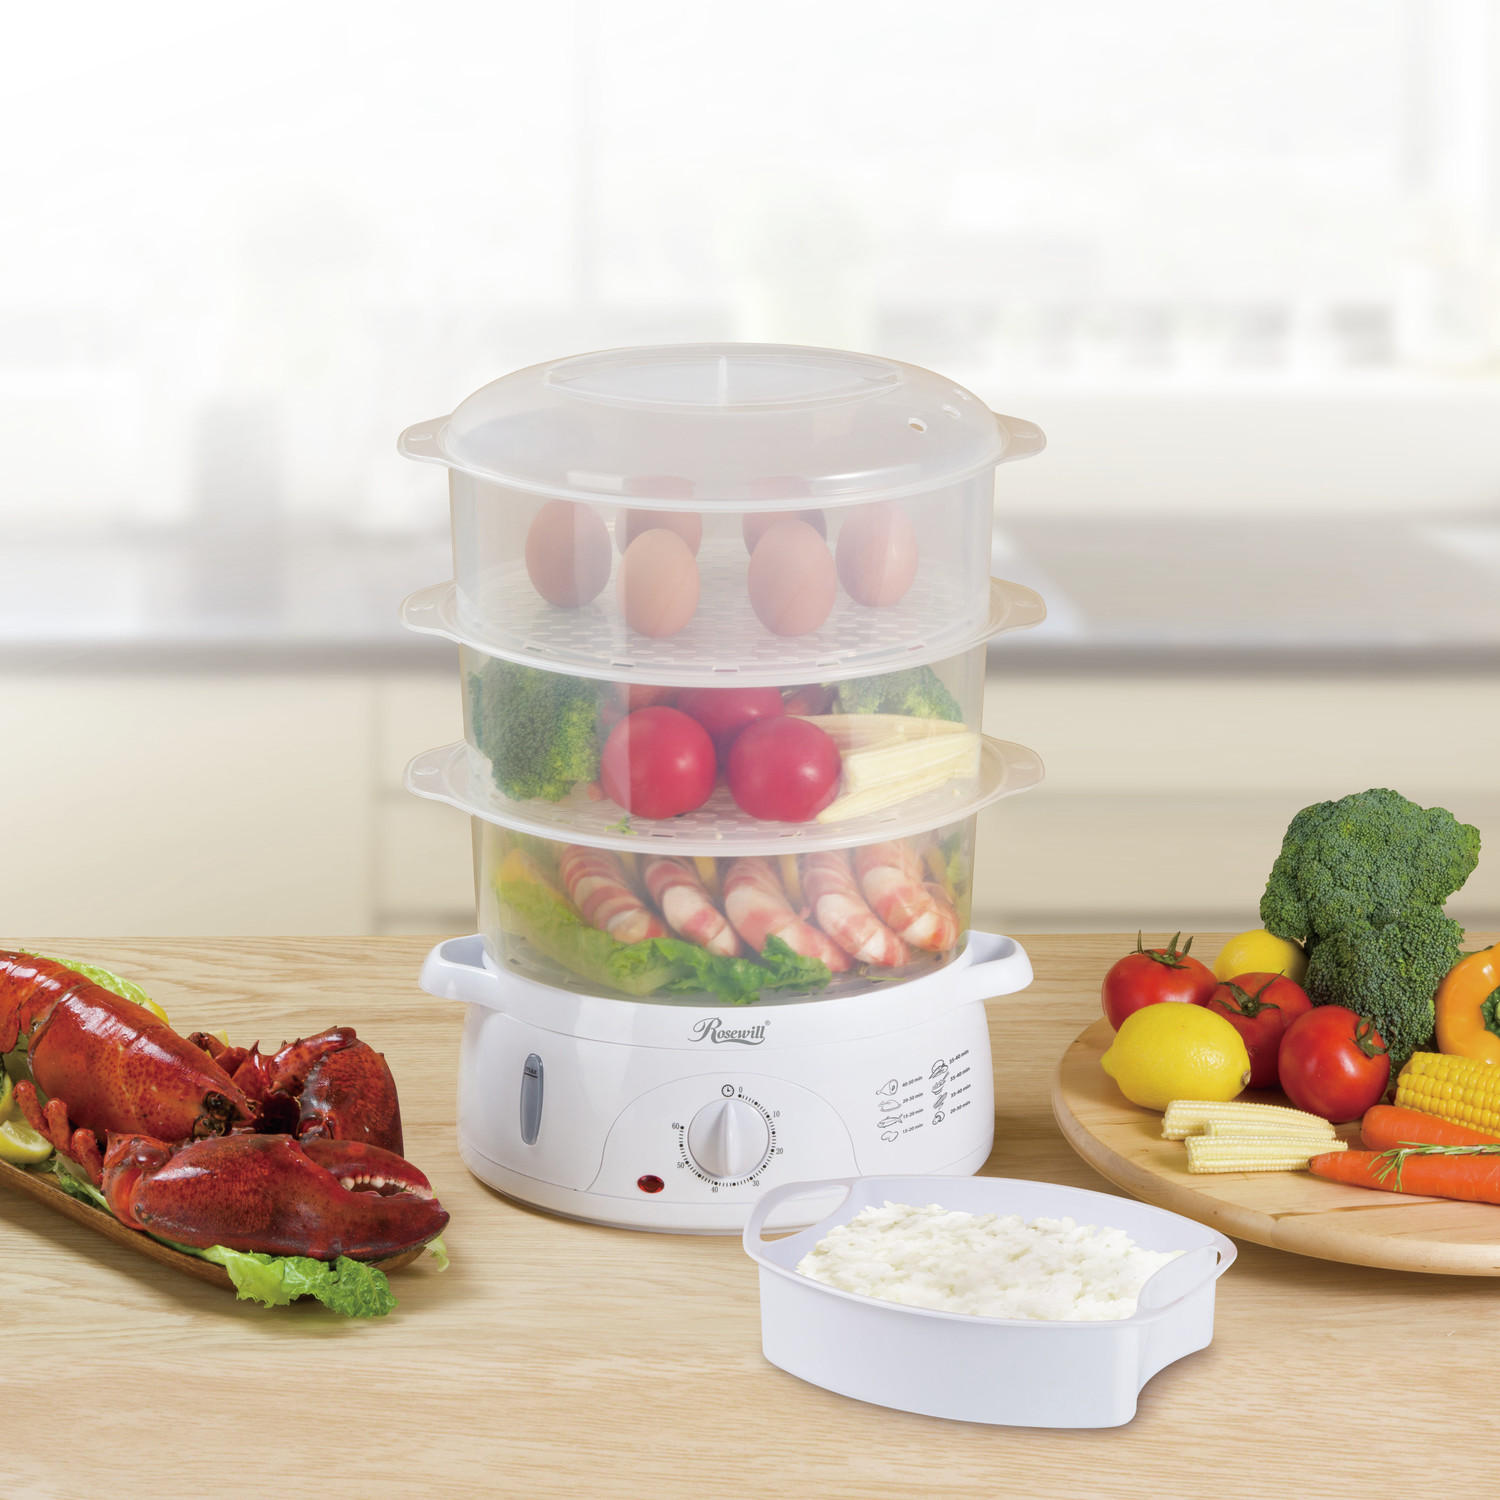 $29.99 Rosewill RHST-15001 9.5-Quart (9L), 3-Tier Stackable BPA-free baskets Electric Food Steamer with Timer